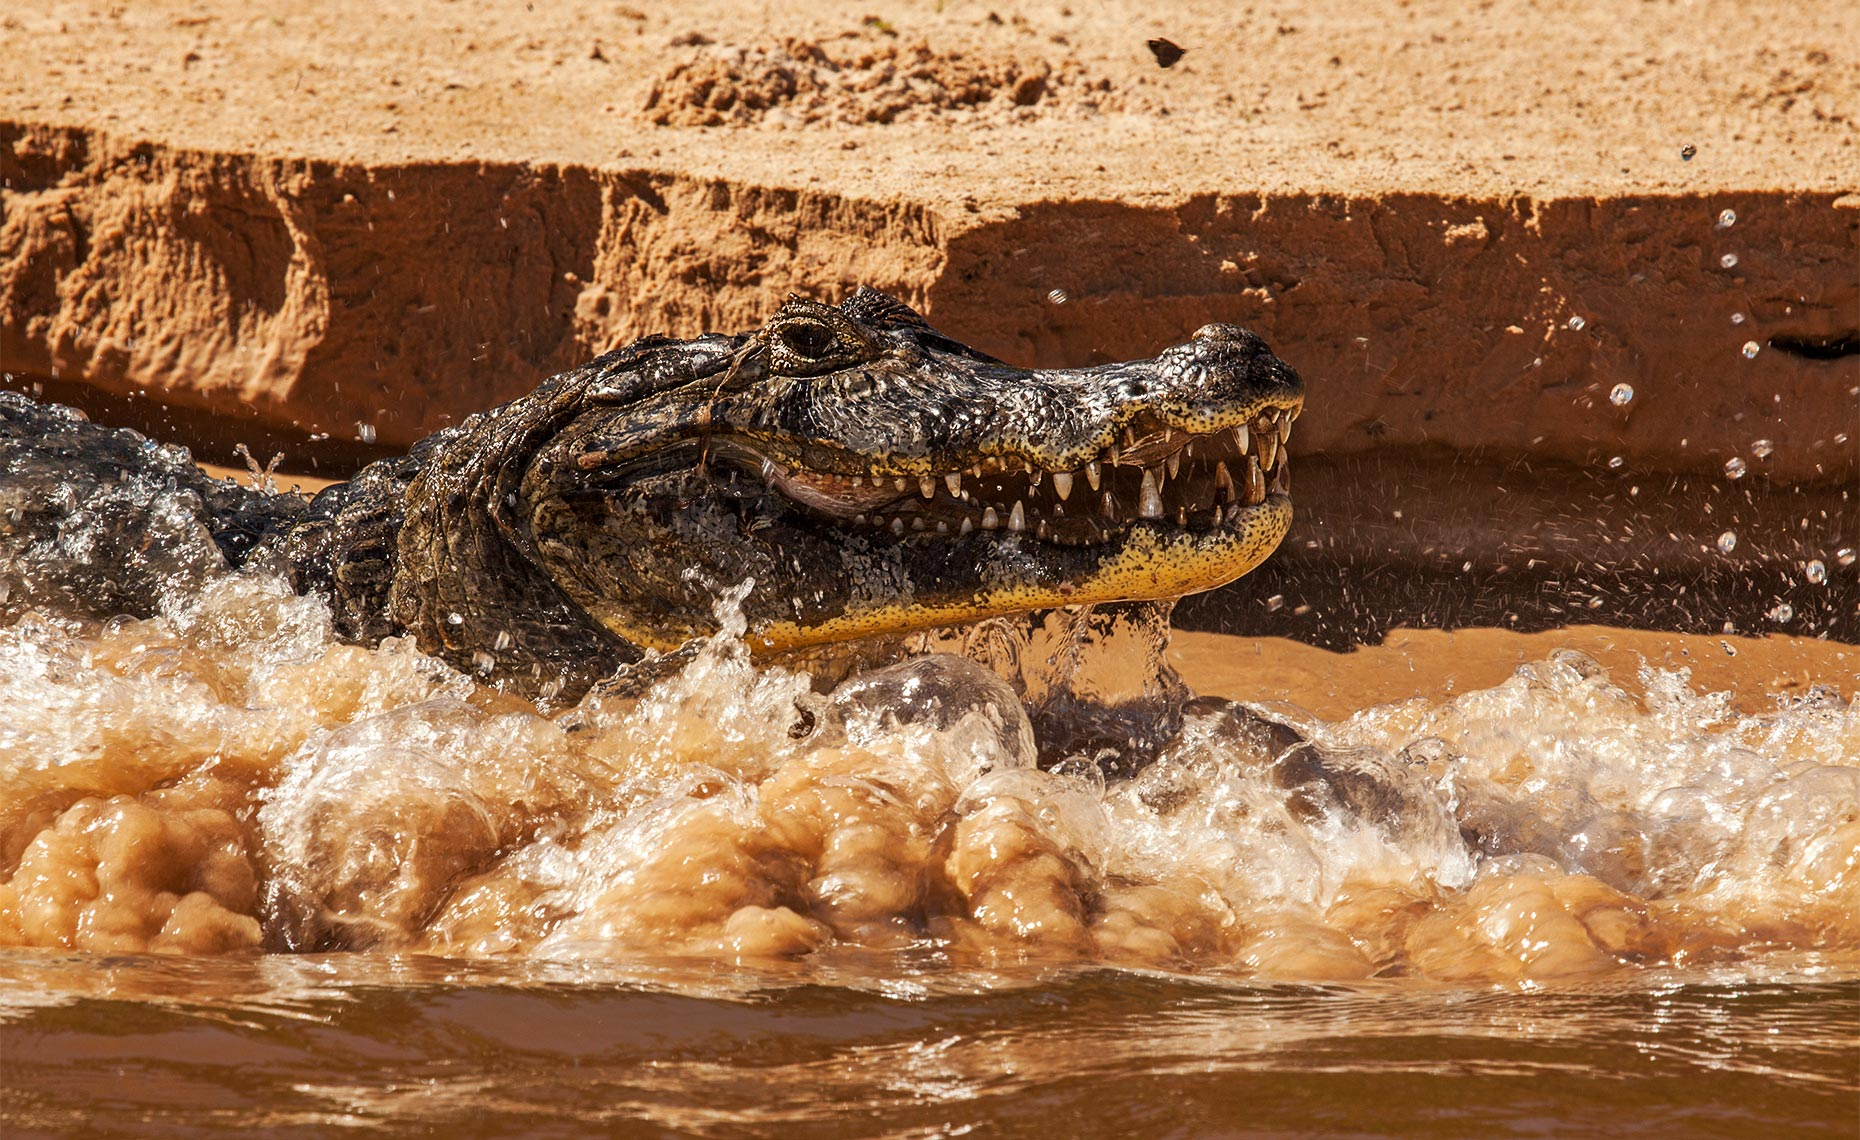 caiman in a pantanal river bank